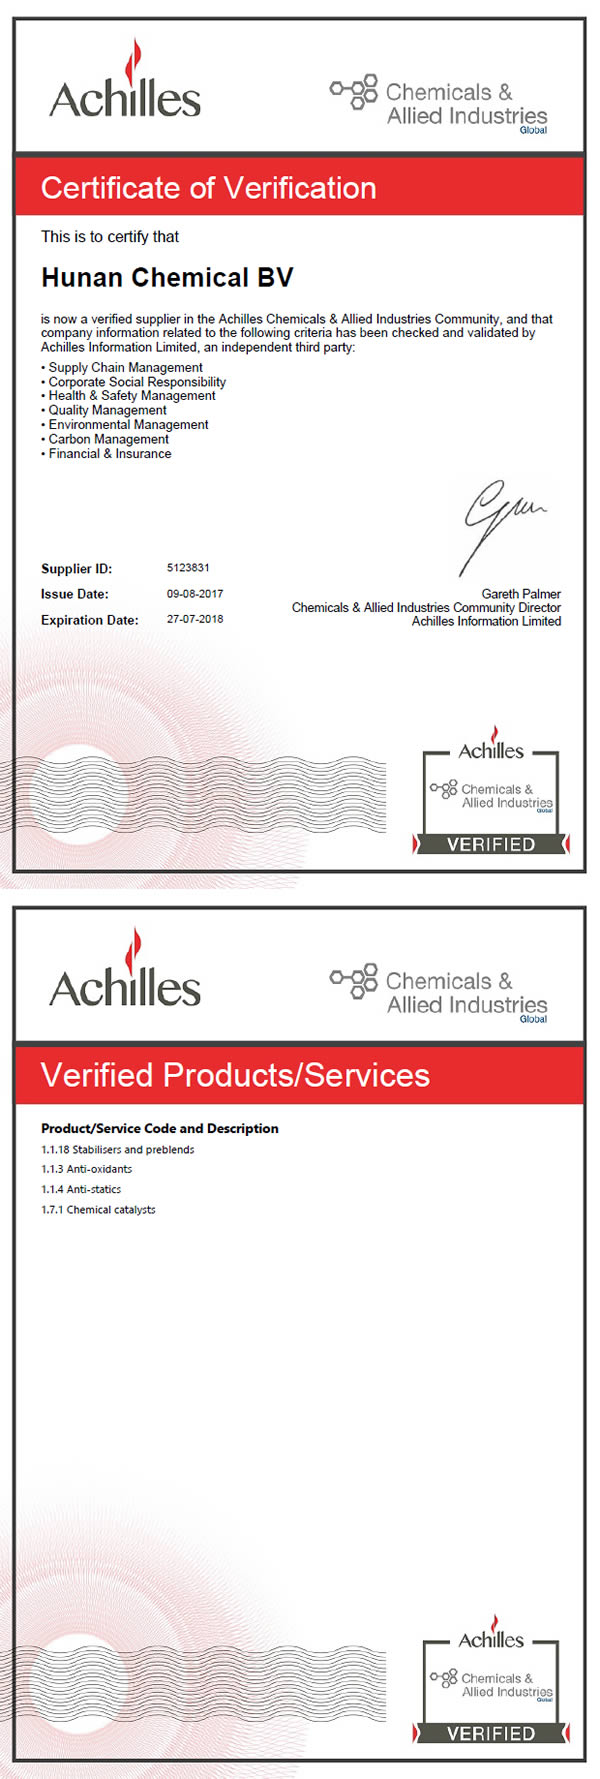 achilles certificate verification hunan chemical